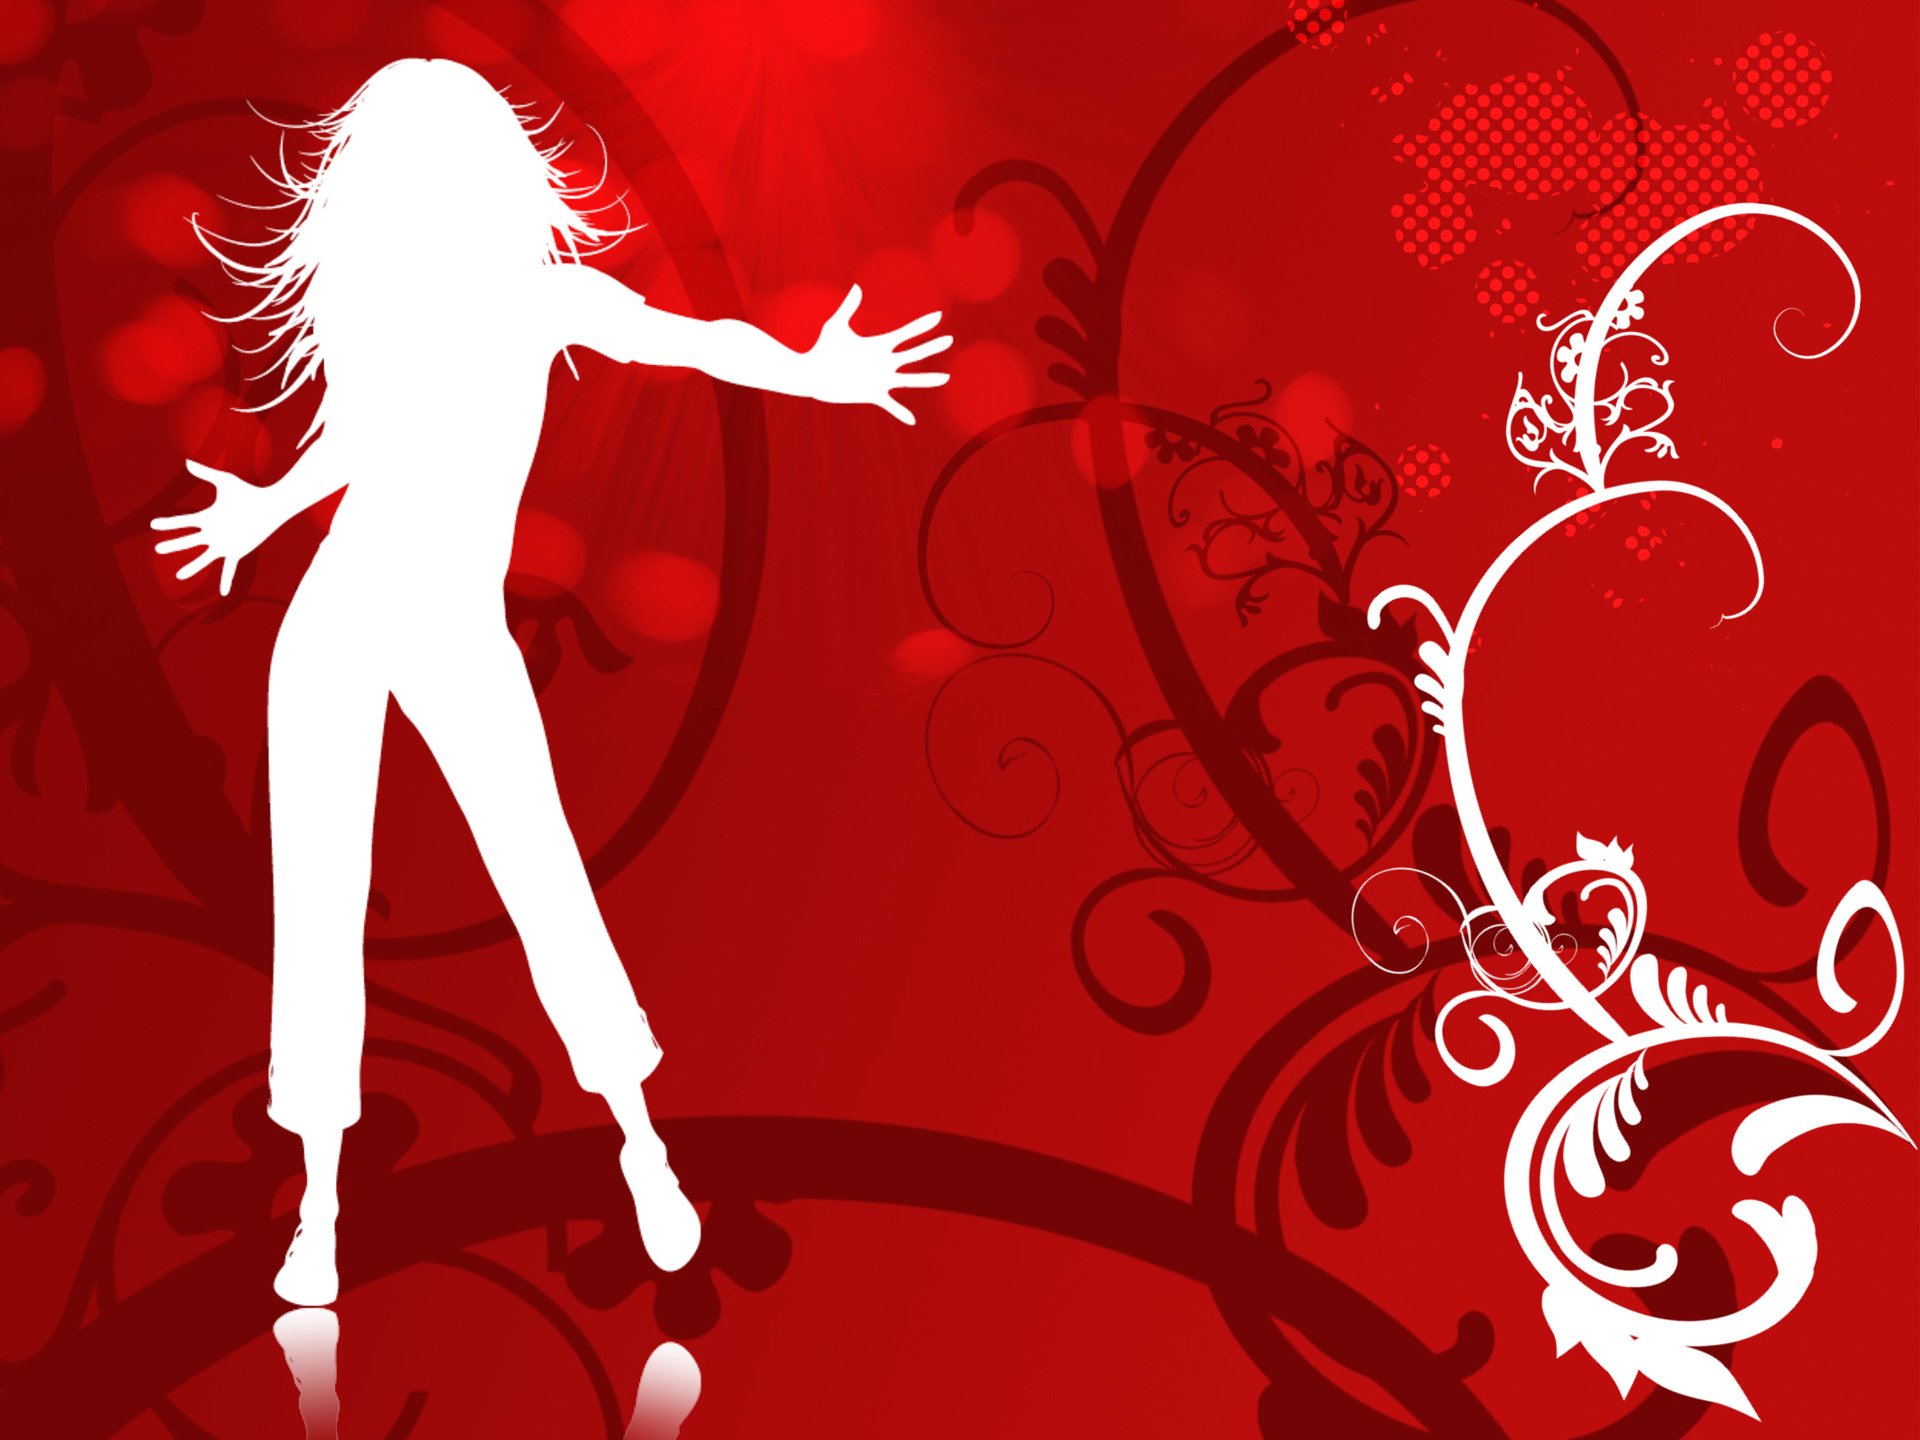 HD Wallpapers Great Quality Babe Dance HD